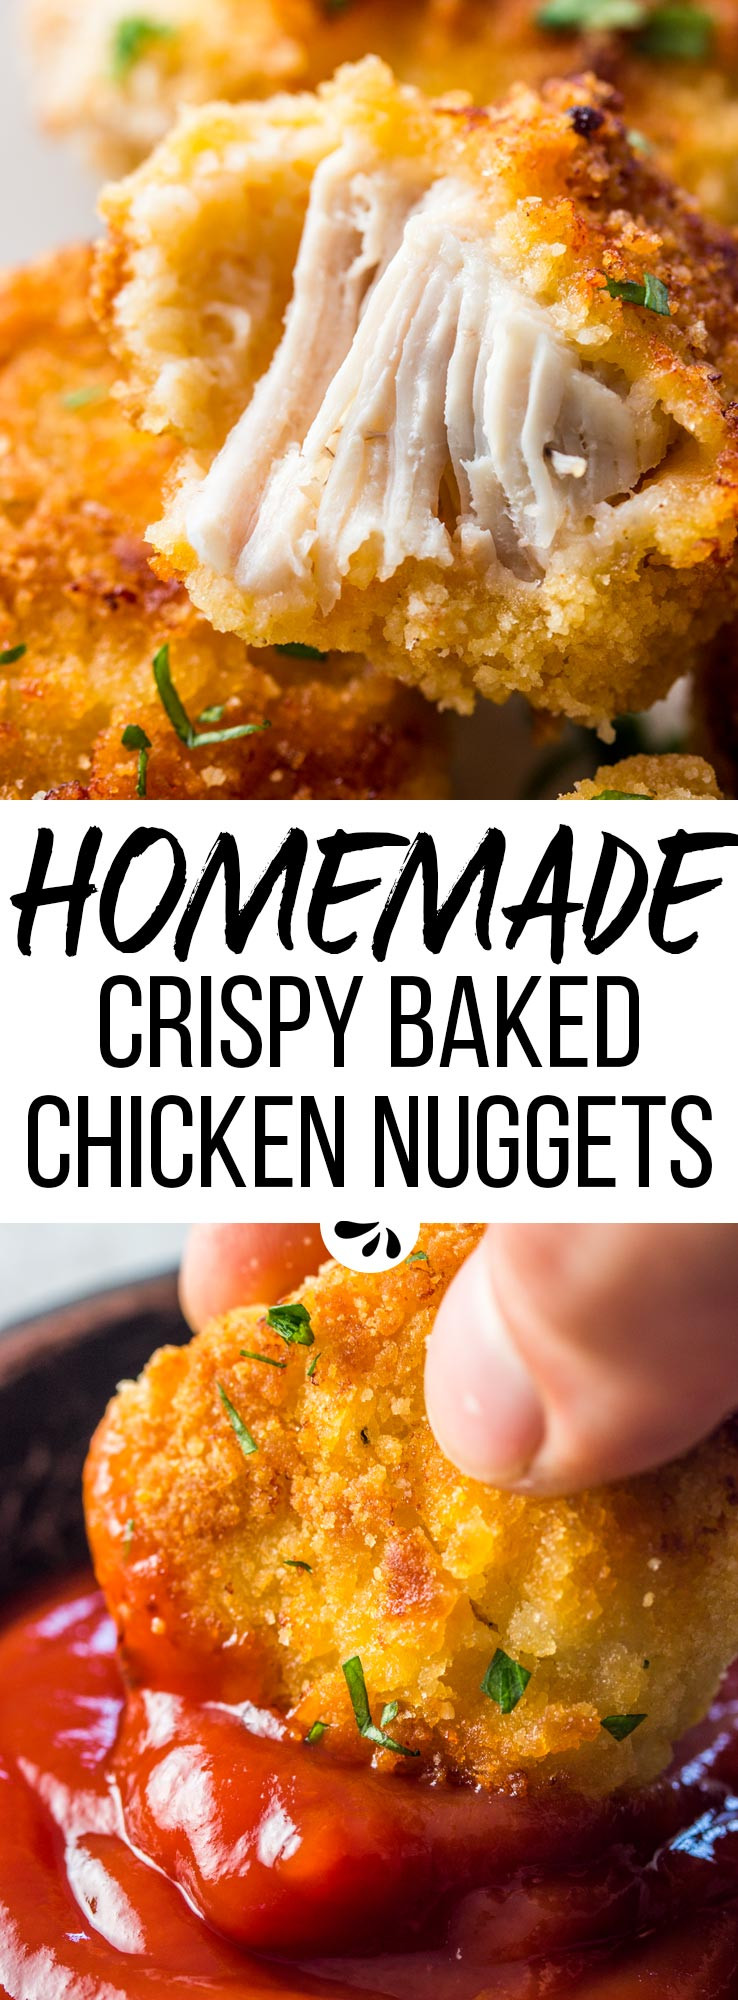 Baked Chicken Nuggets Recipe  Healthy Baked Chicken Nug s Homemade Fast Food